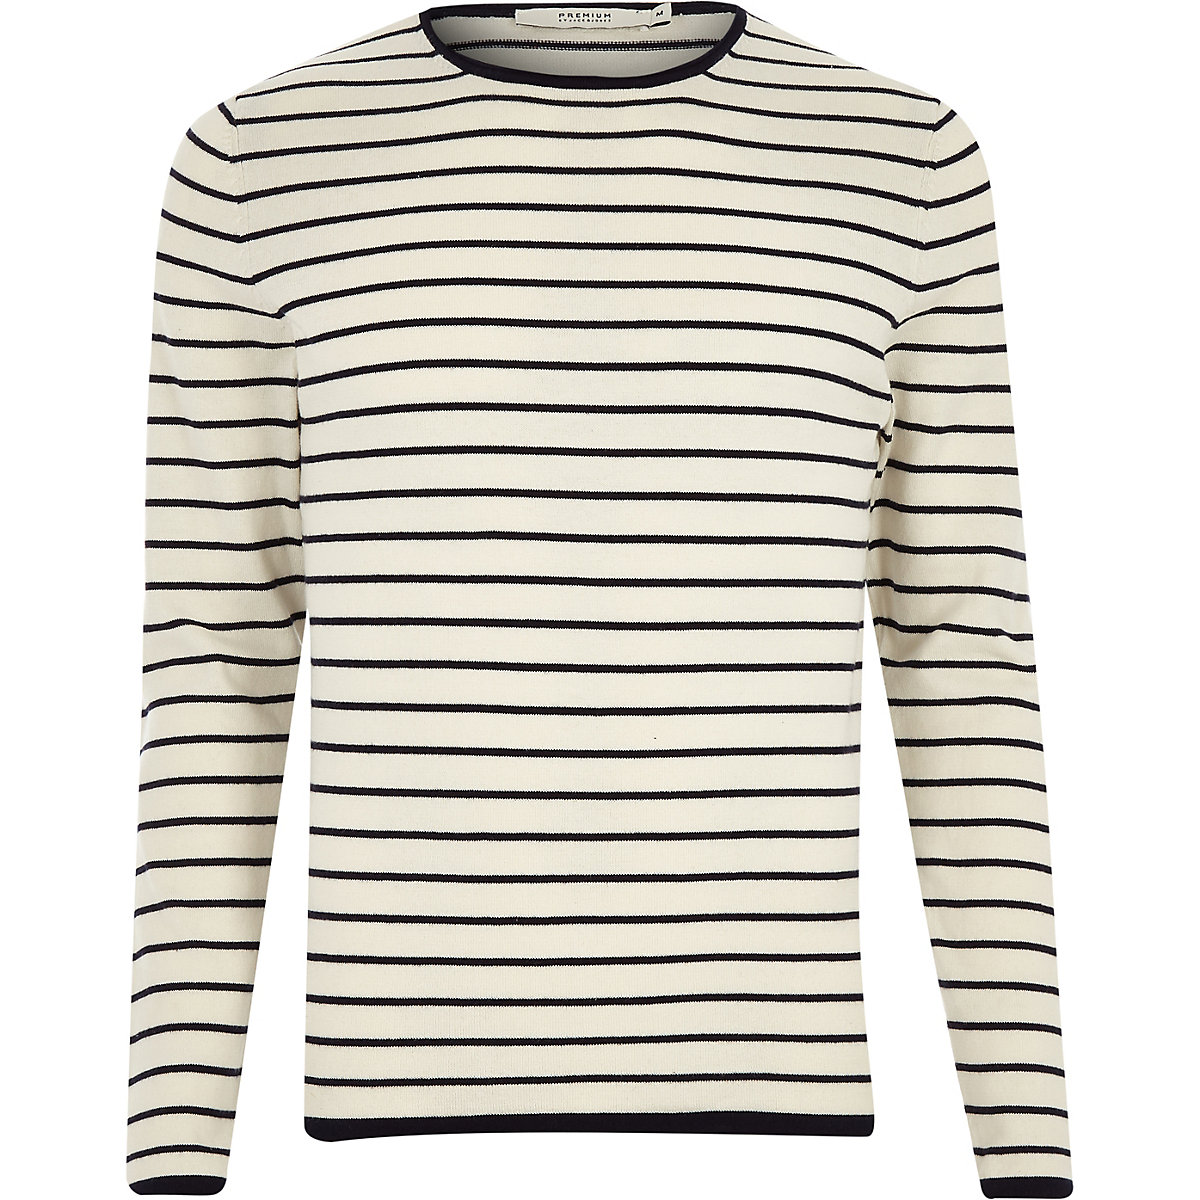 Jack & Jones grey knit stripe jumper